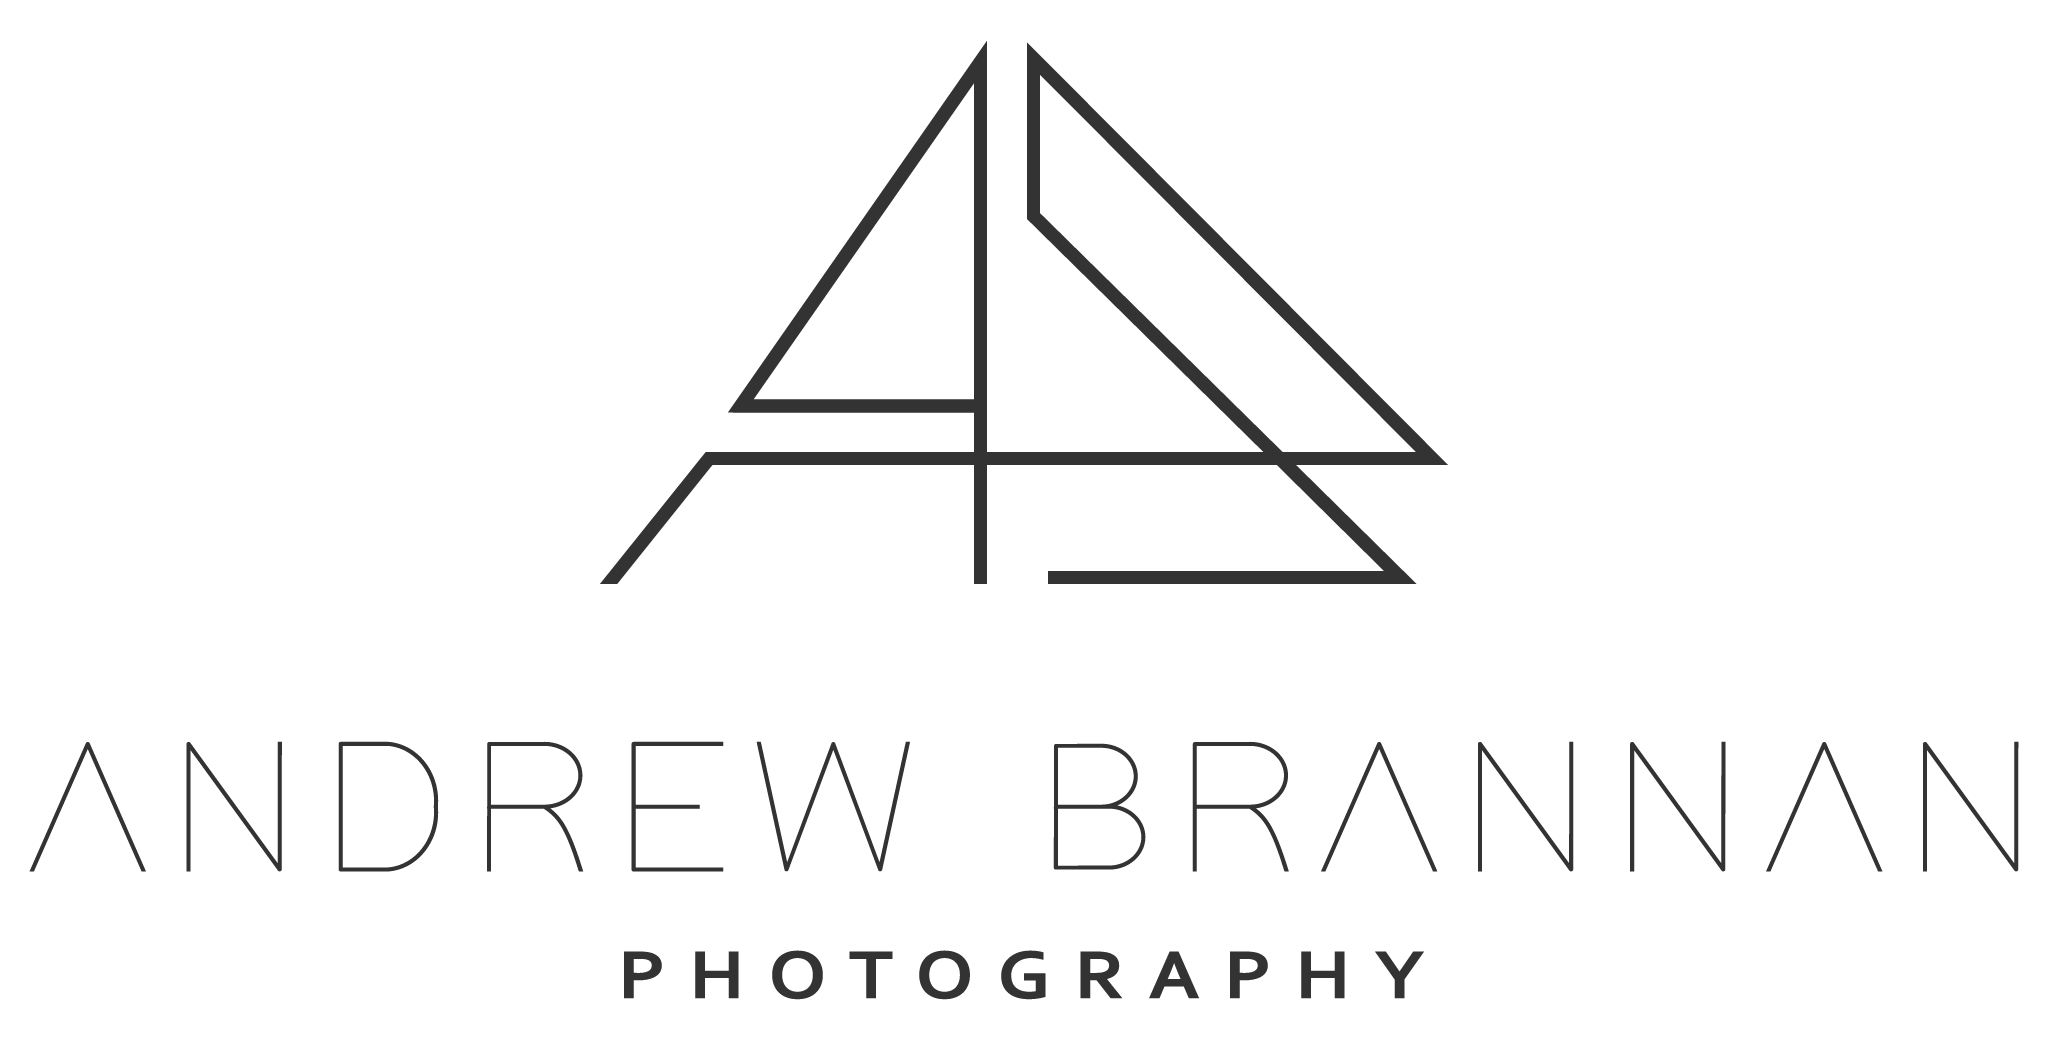 Andrew Brannan Photography